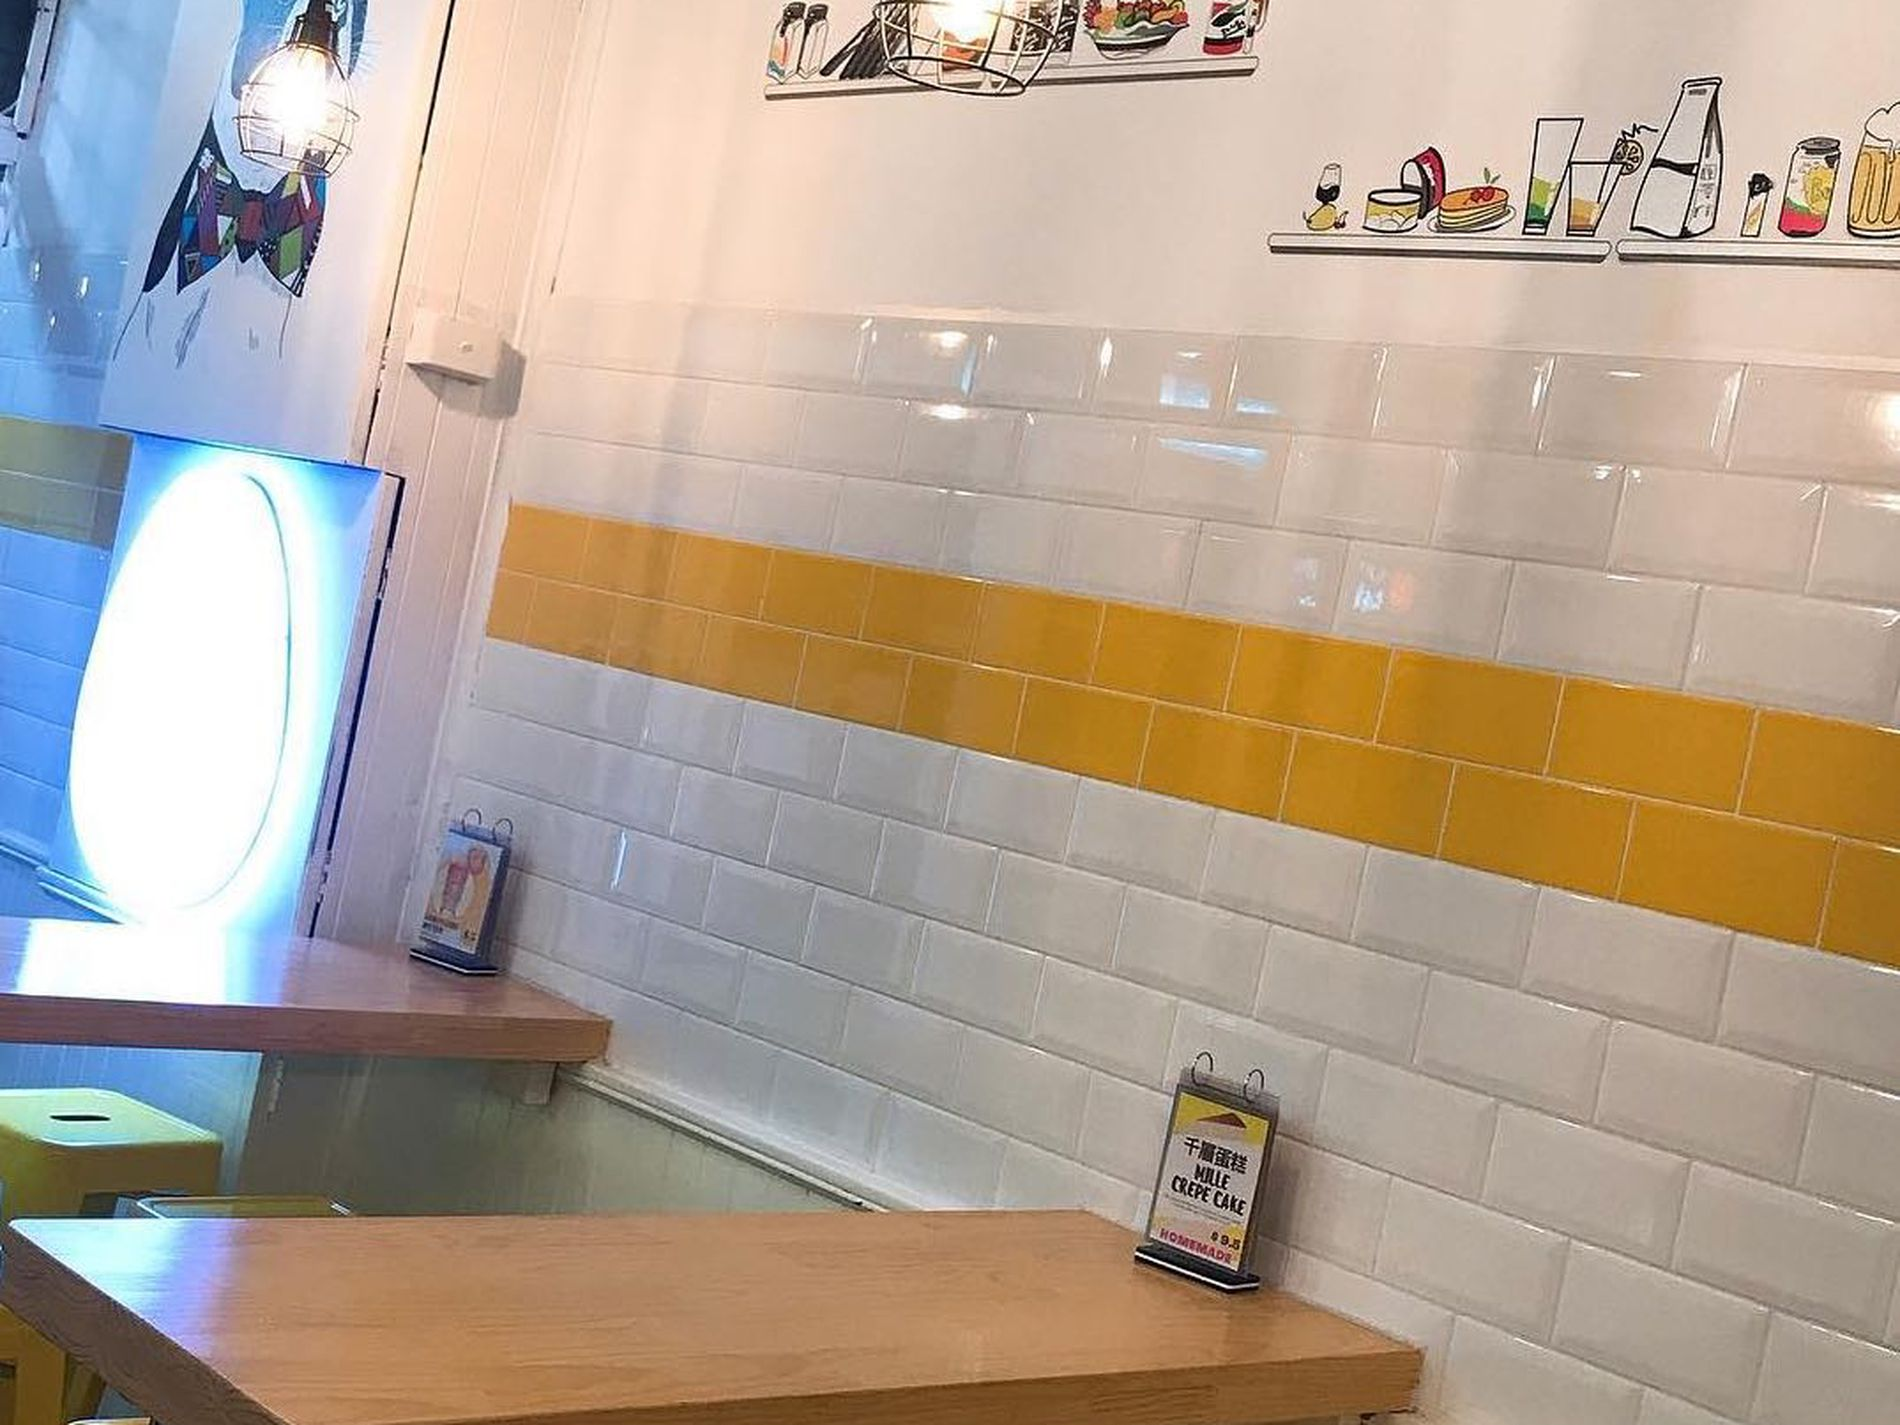 Ice Cream, Bubble Tea and Dessert Business for Sale South Yarra